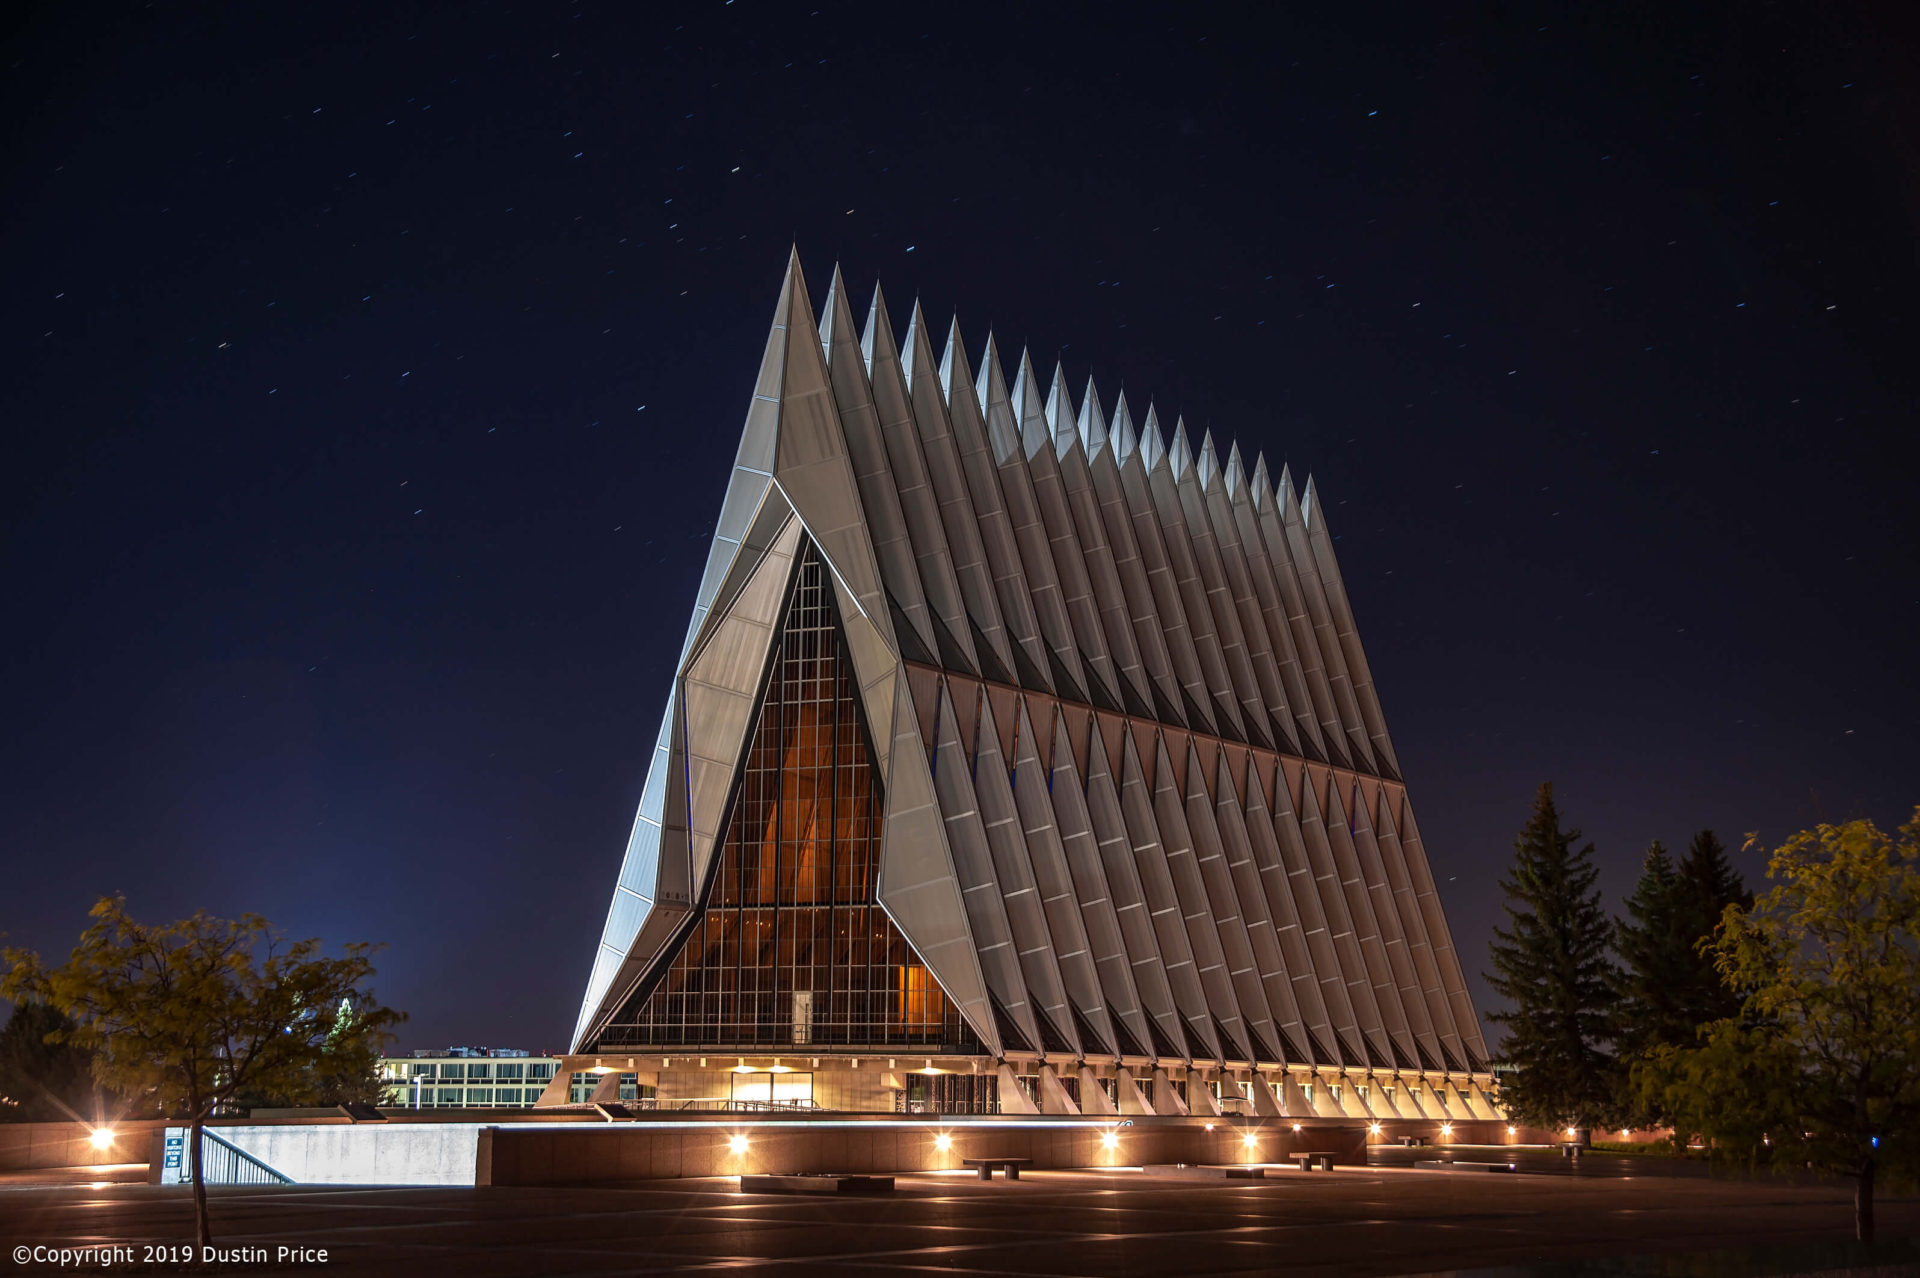 the Air Force Academy Chapel at night